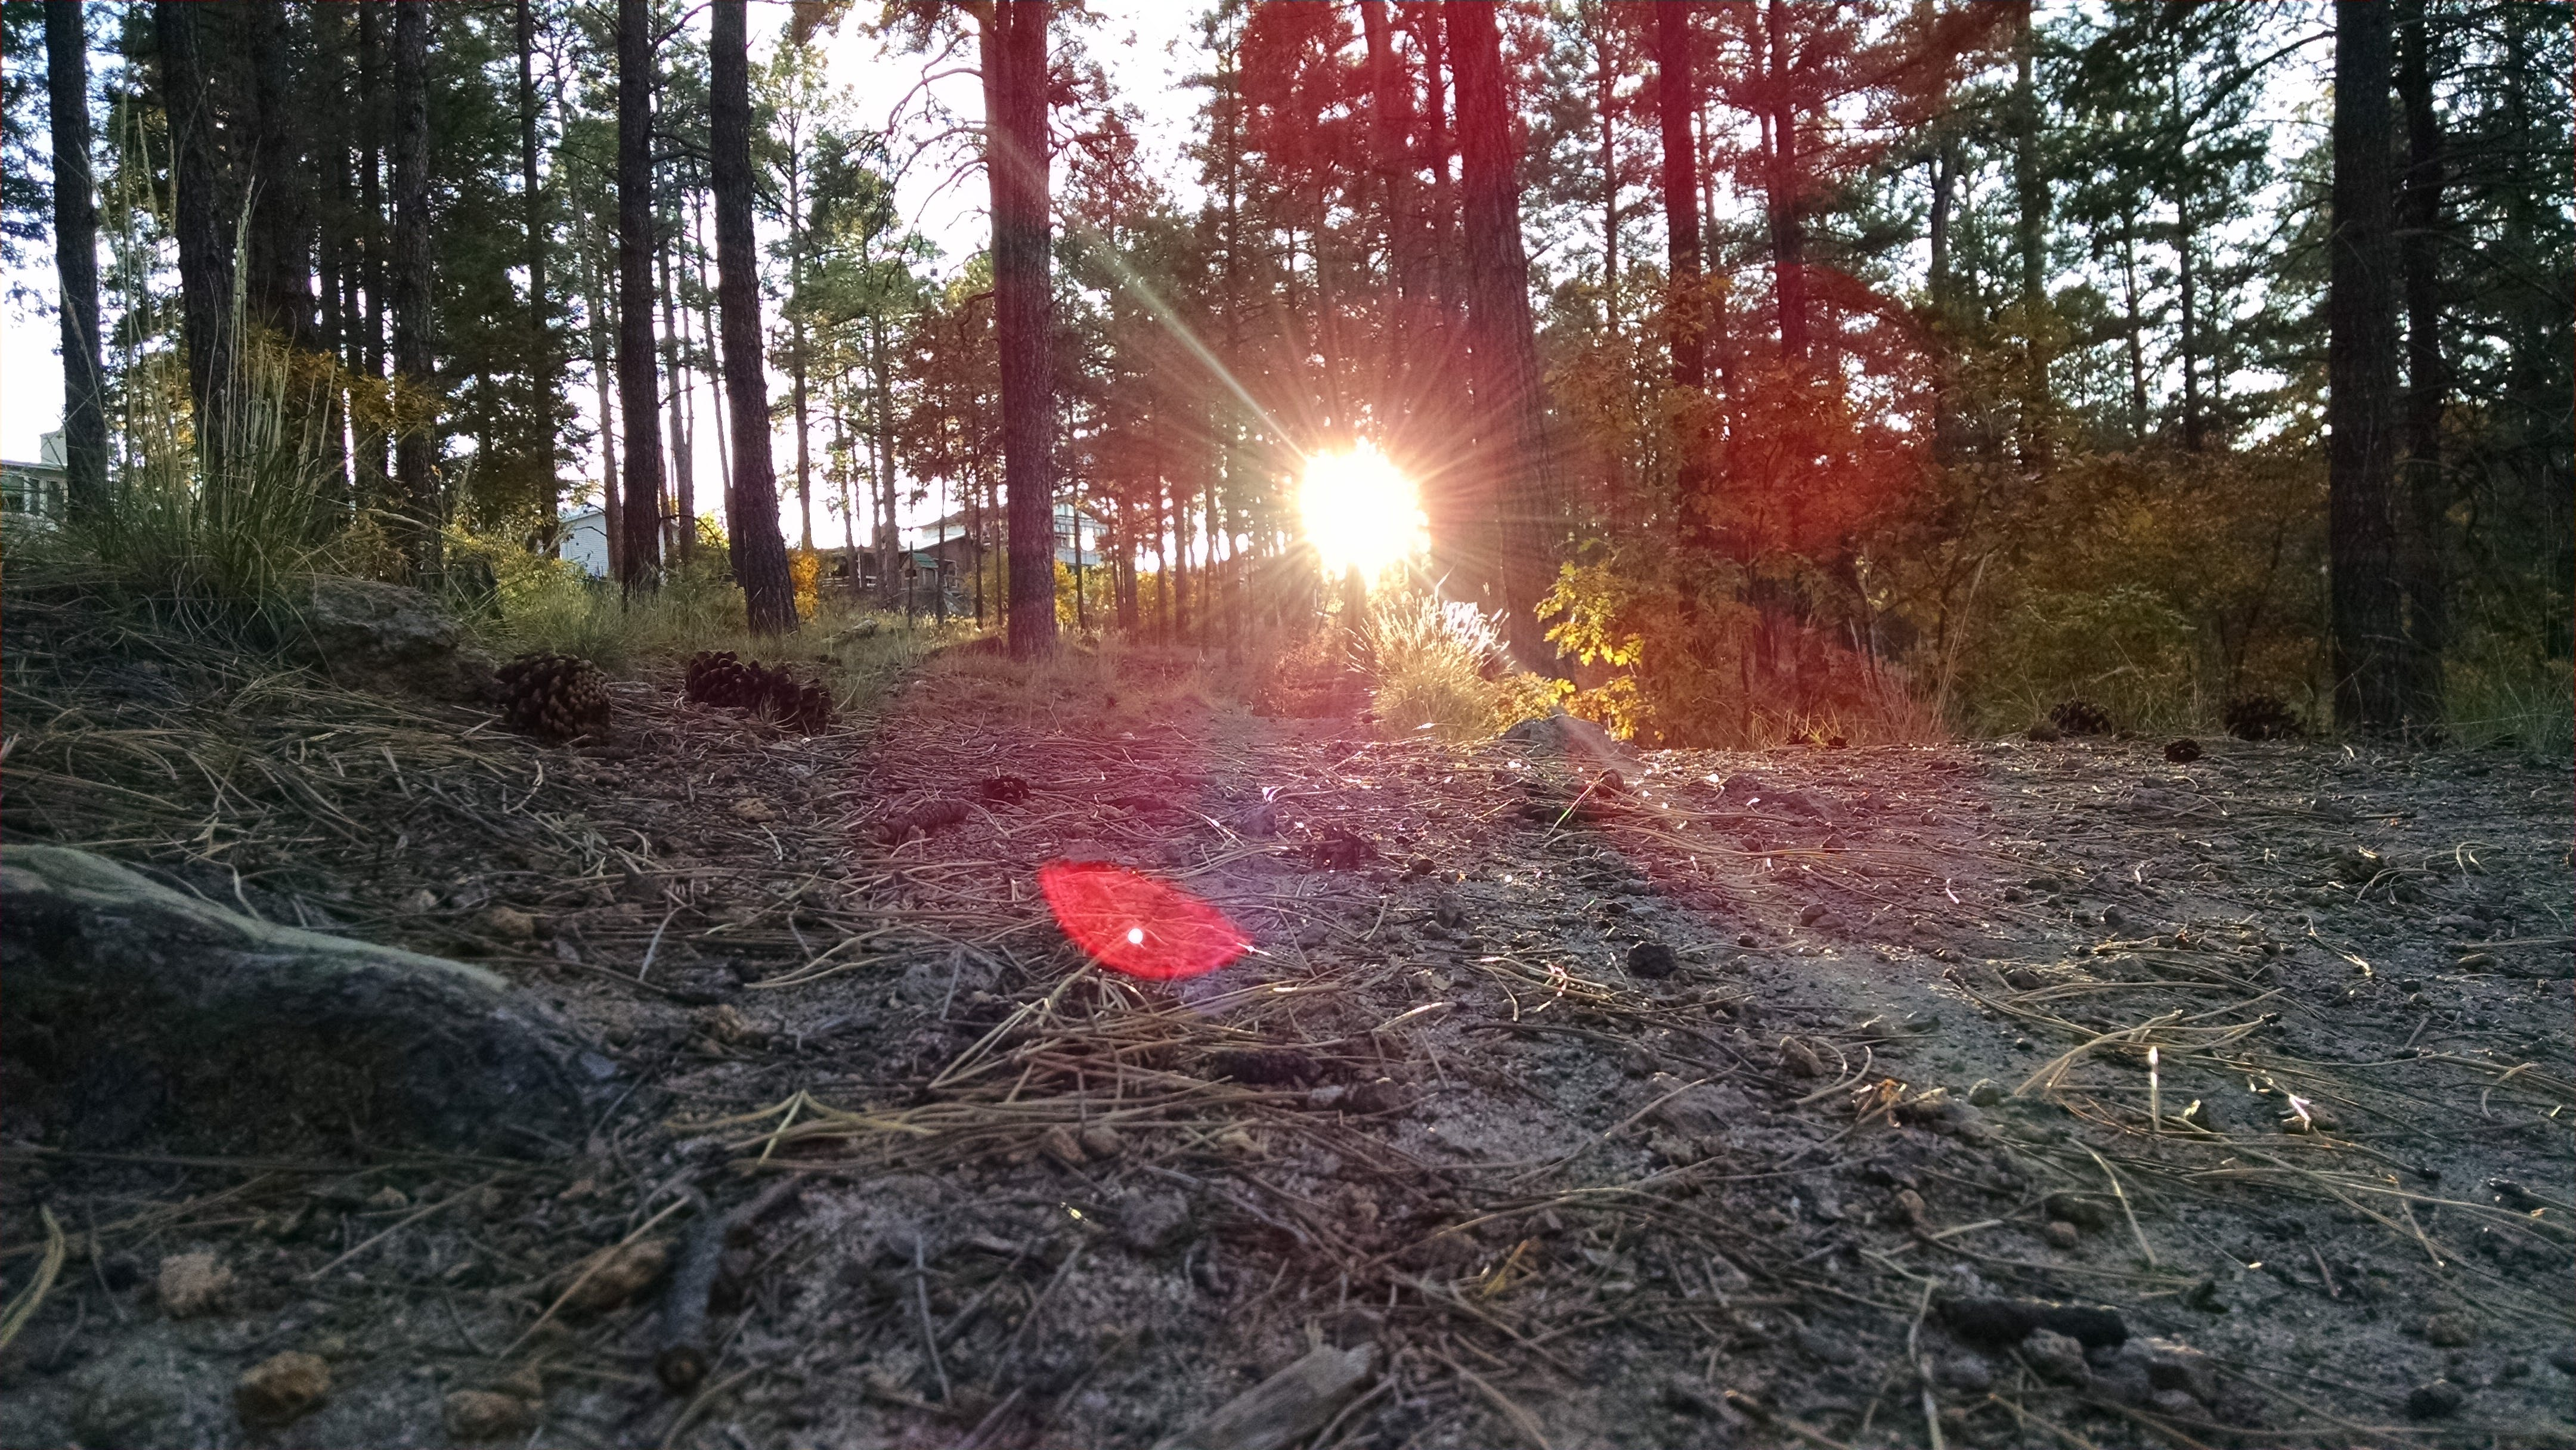 Free stock photo of dirt road, forest, hiking, sunlight